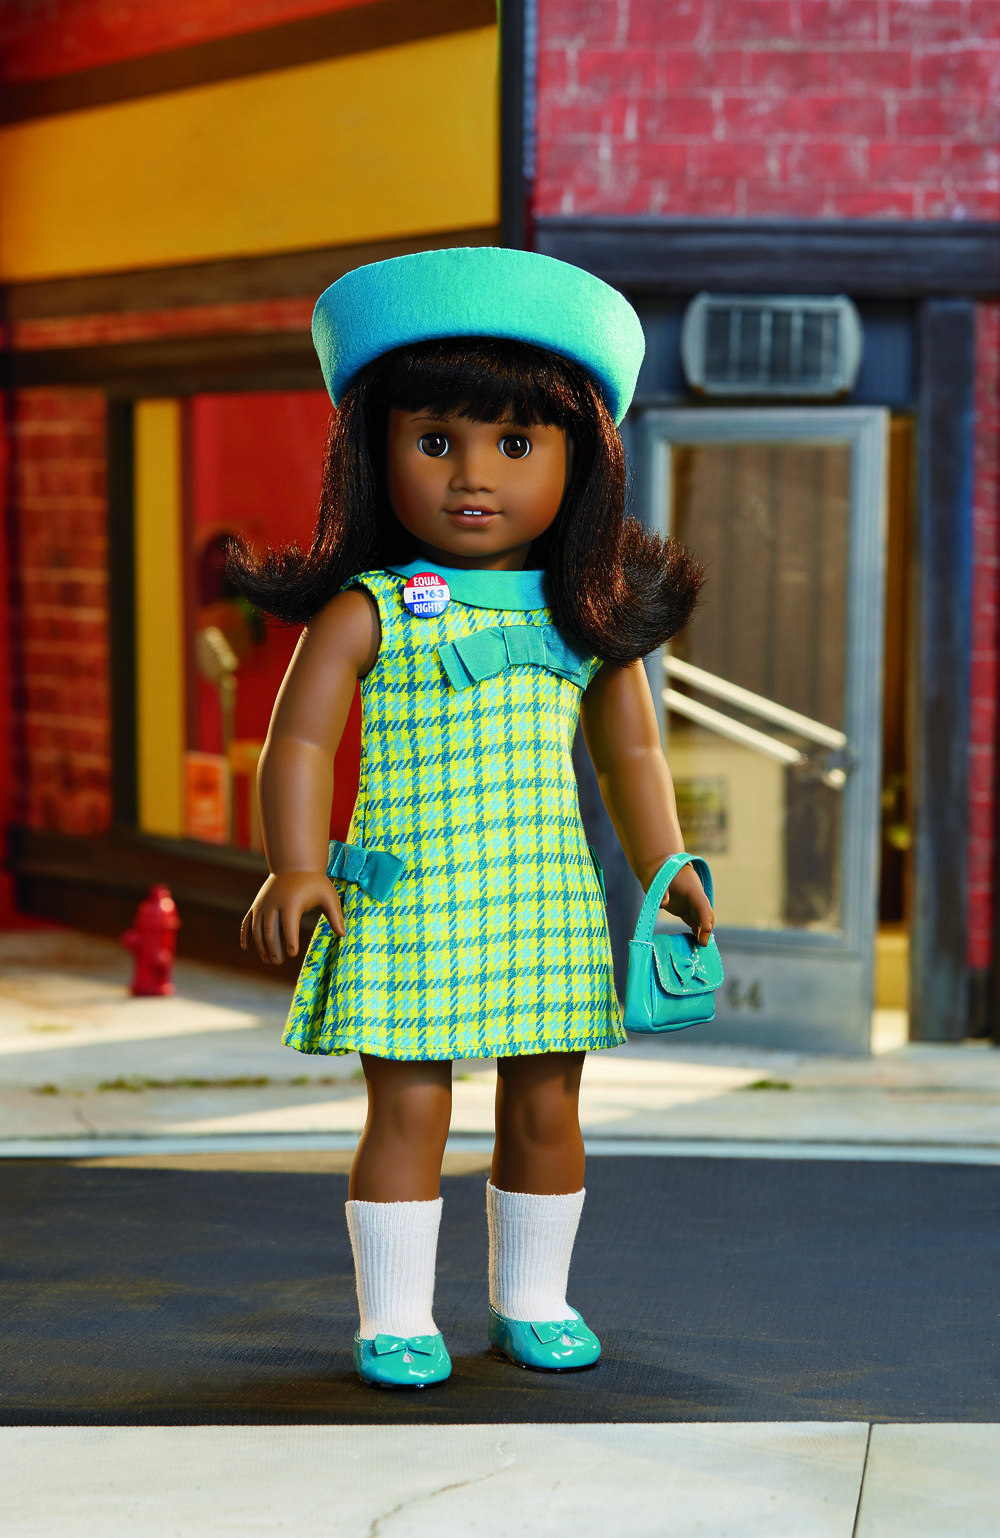 Meet Melody Ellison - American Girl's New BeForever Character